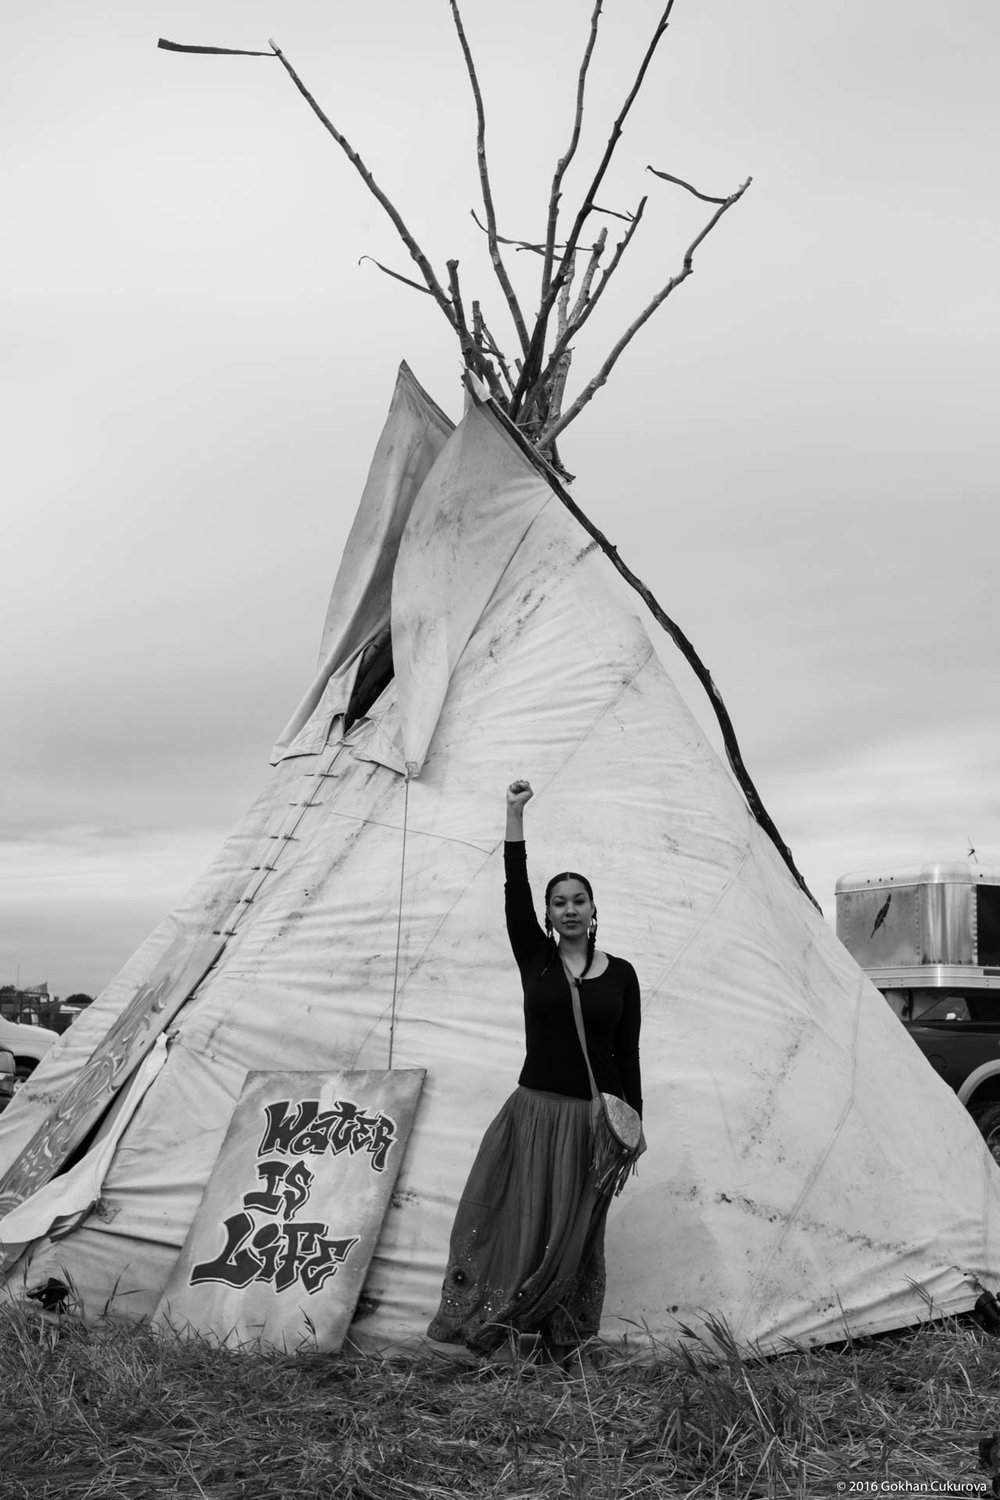 Leah, a water protector!